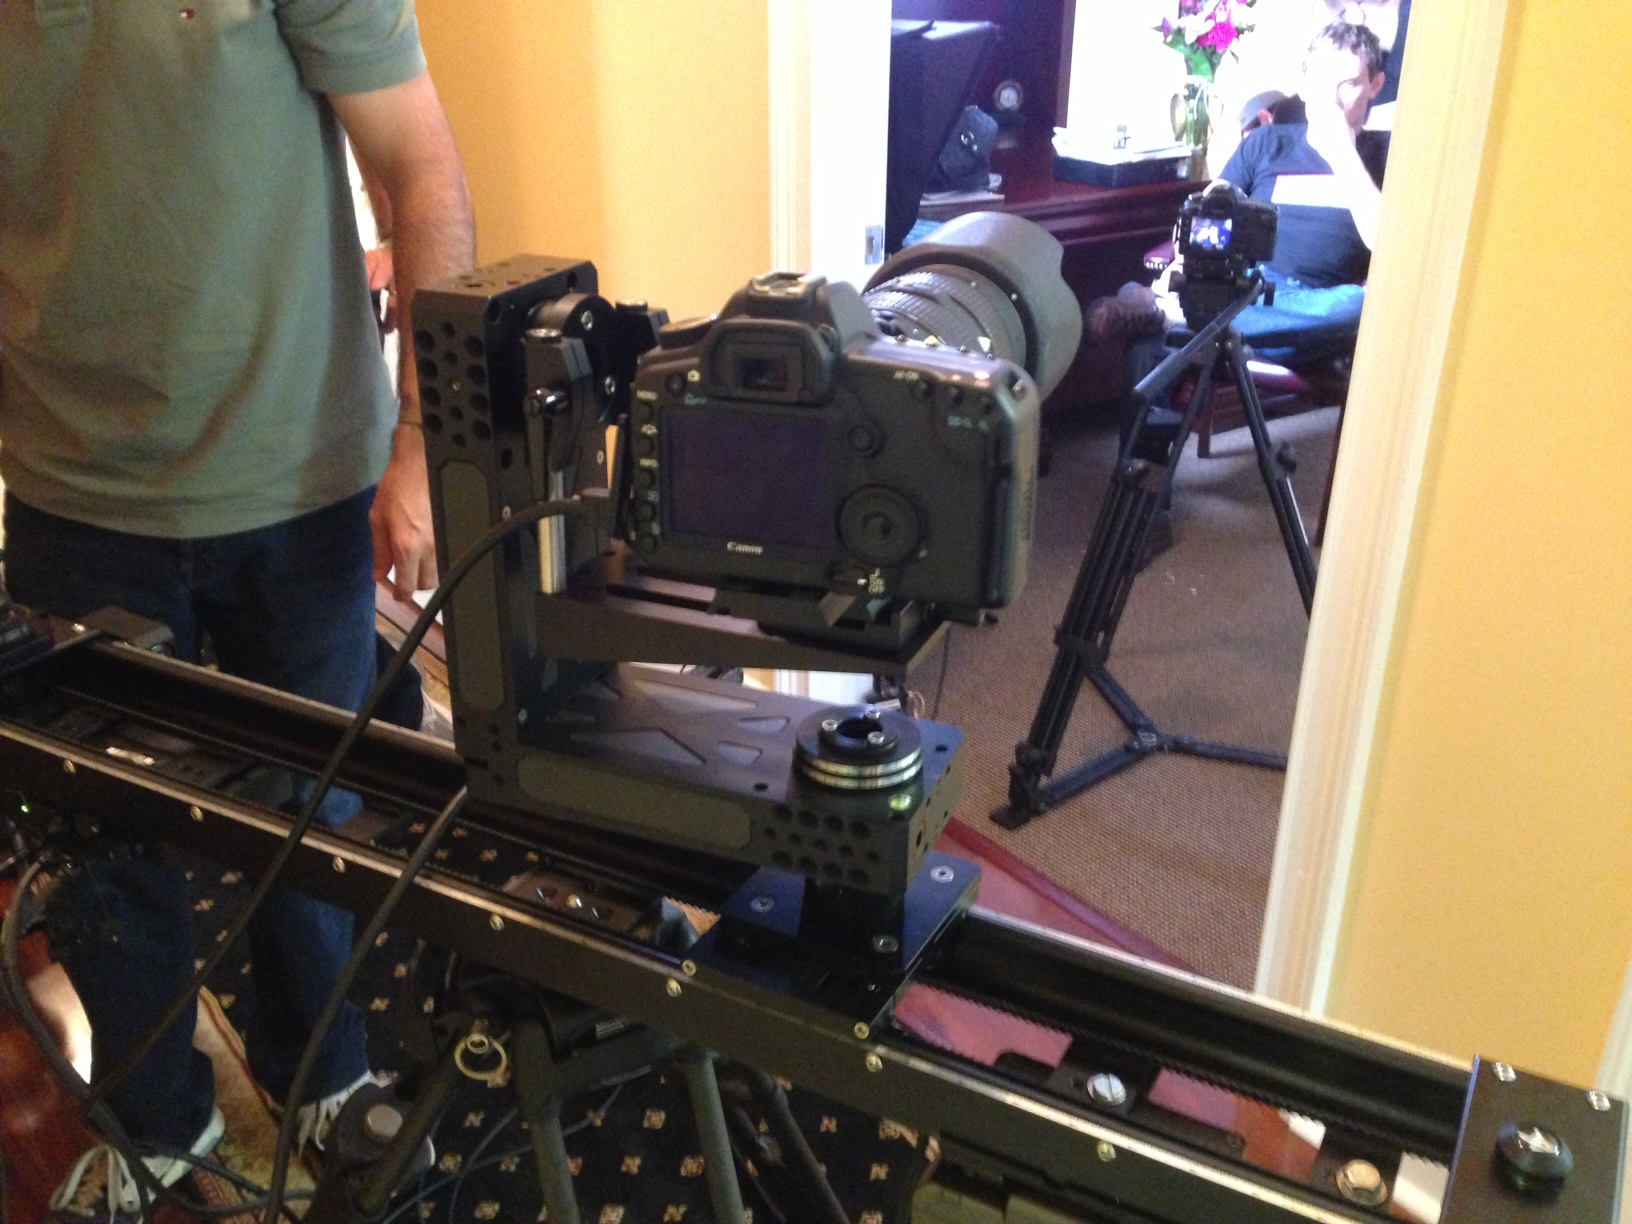 The Camera rig